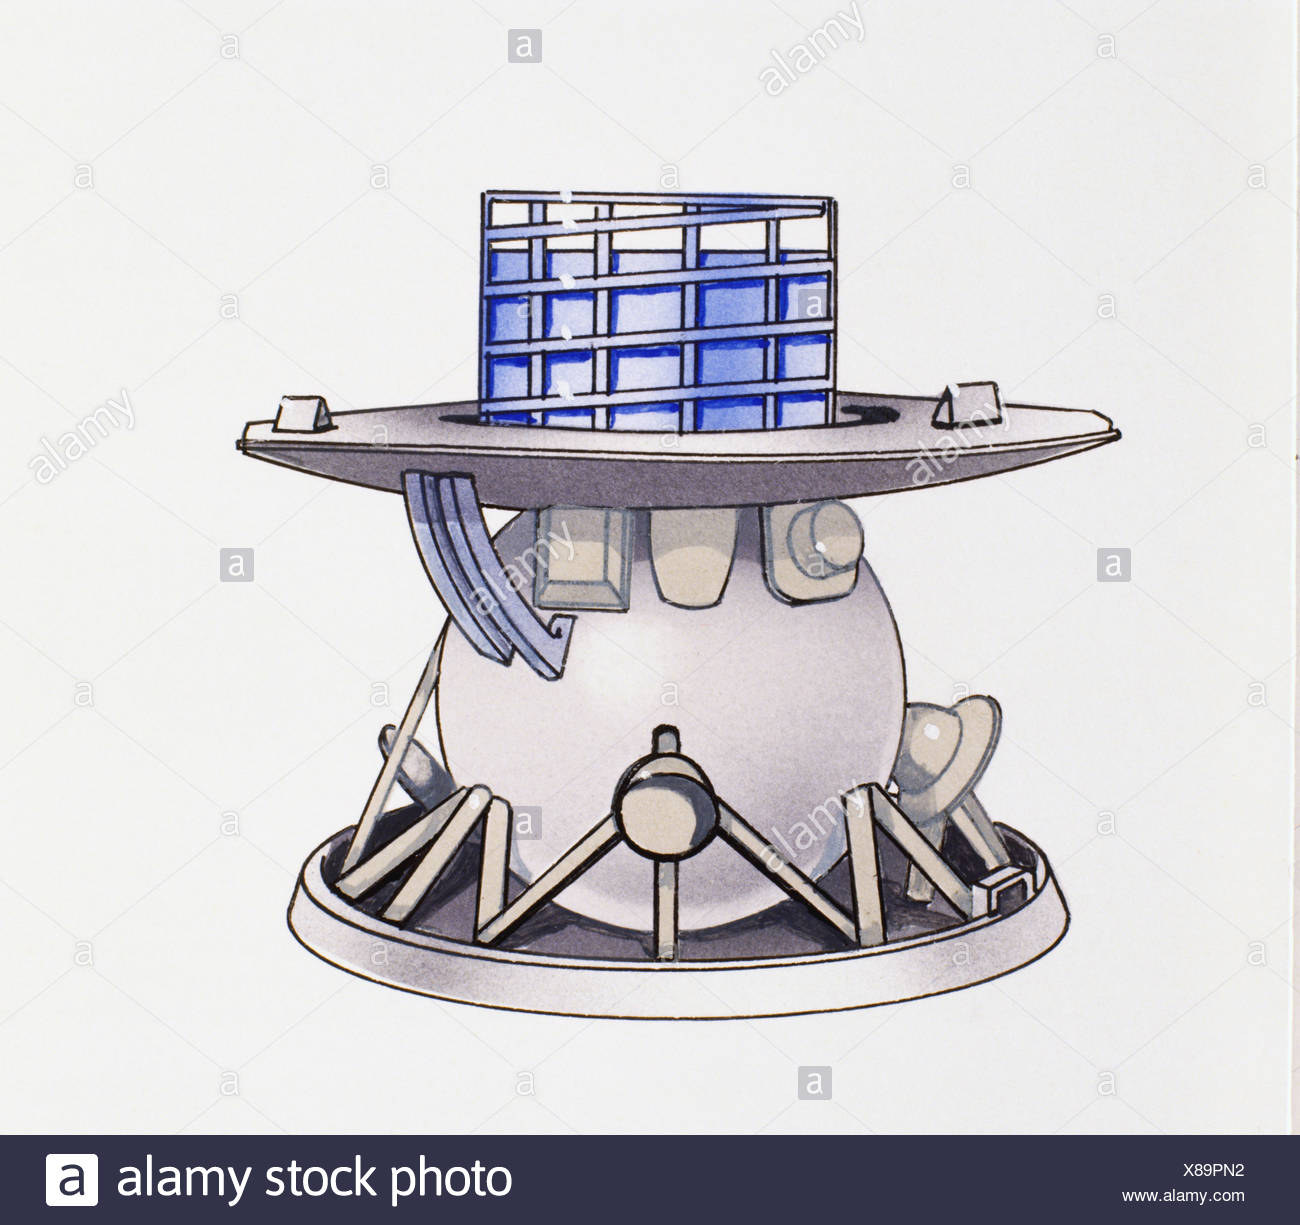 Venera 9 space craft used for exploring Venus in 1975, glass panels at top, large saucer-like skirt and bottom. - Stock Image